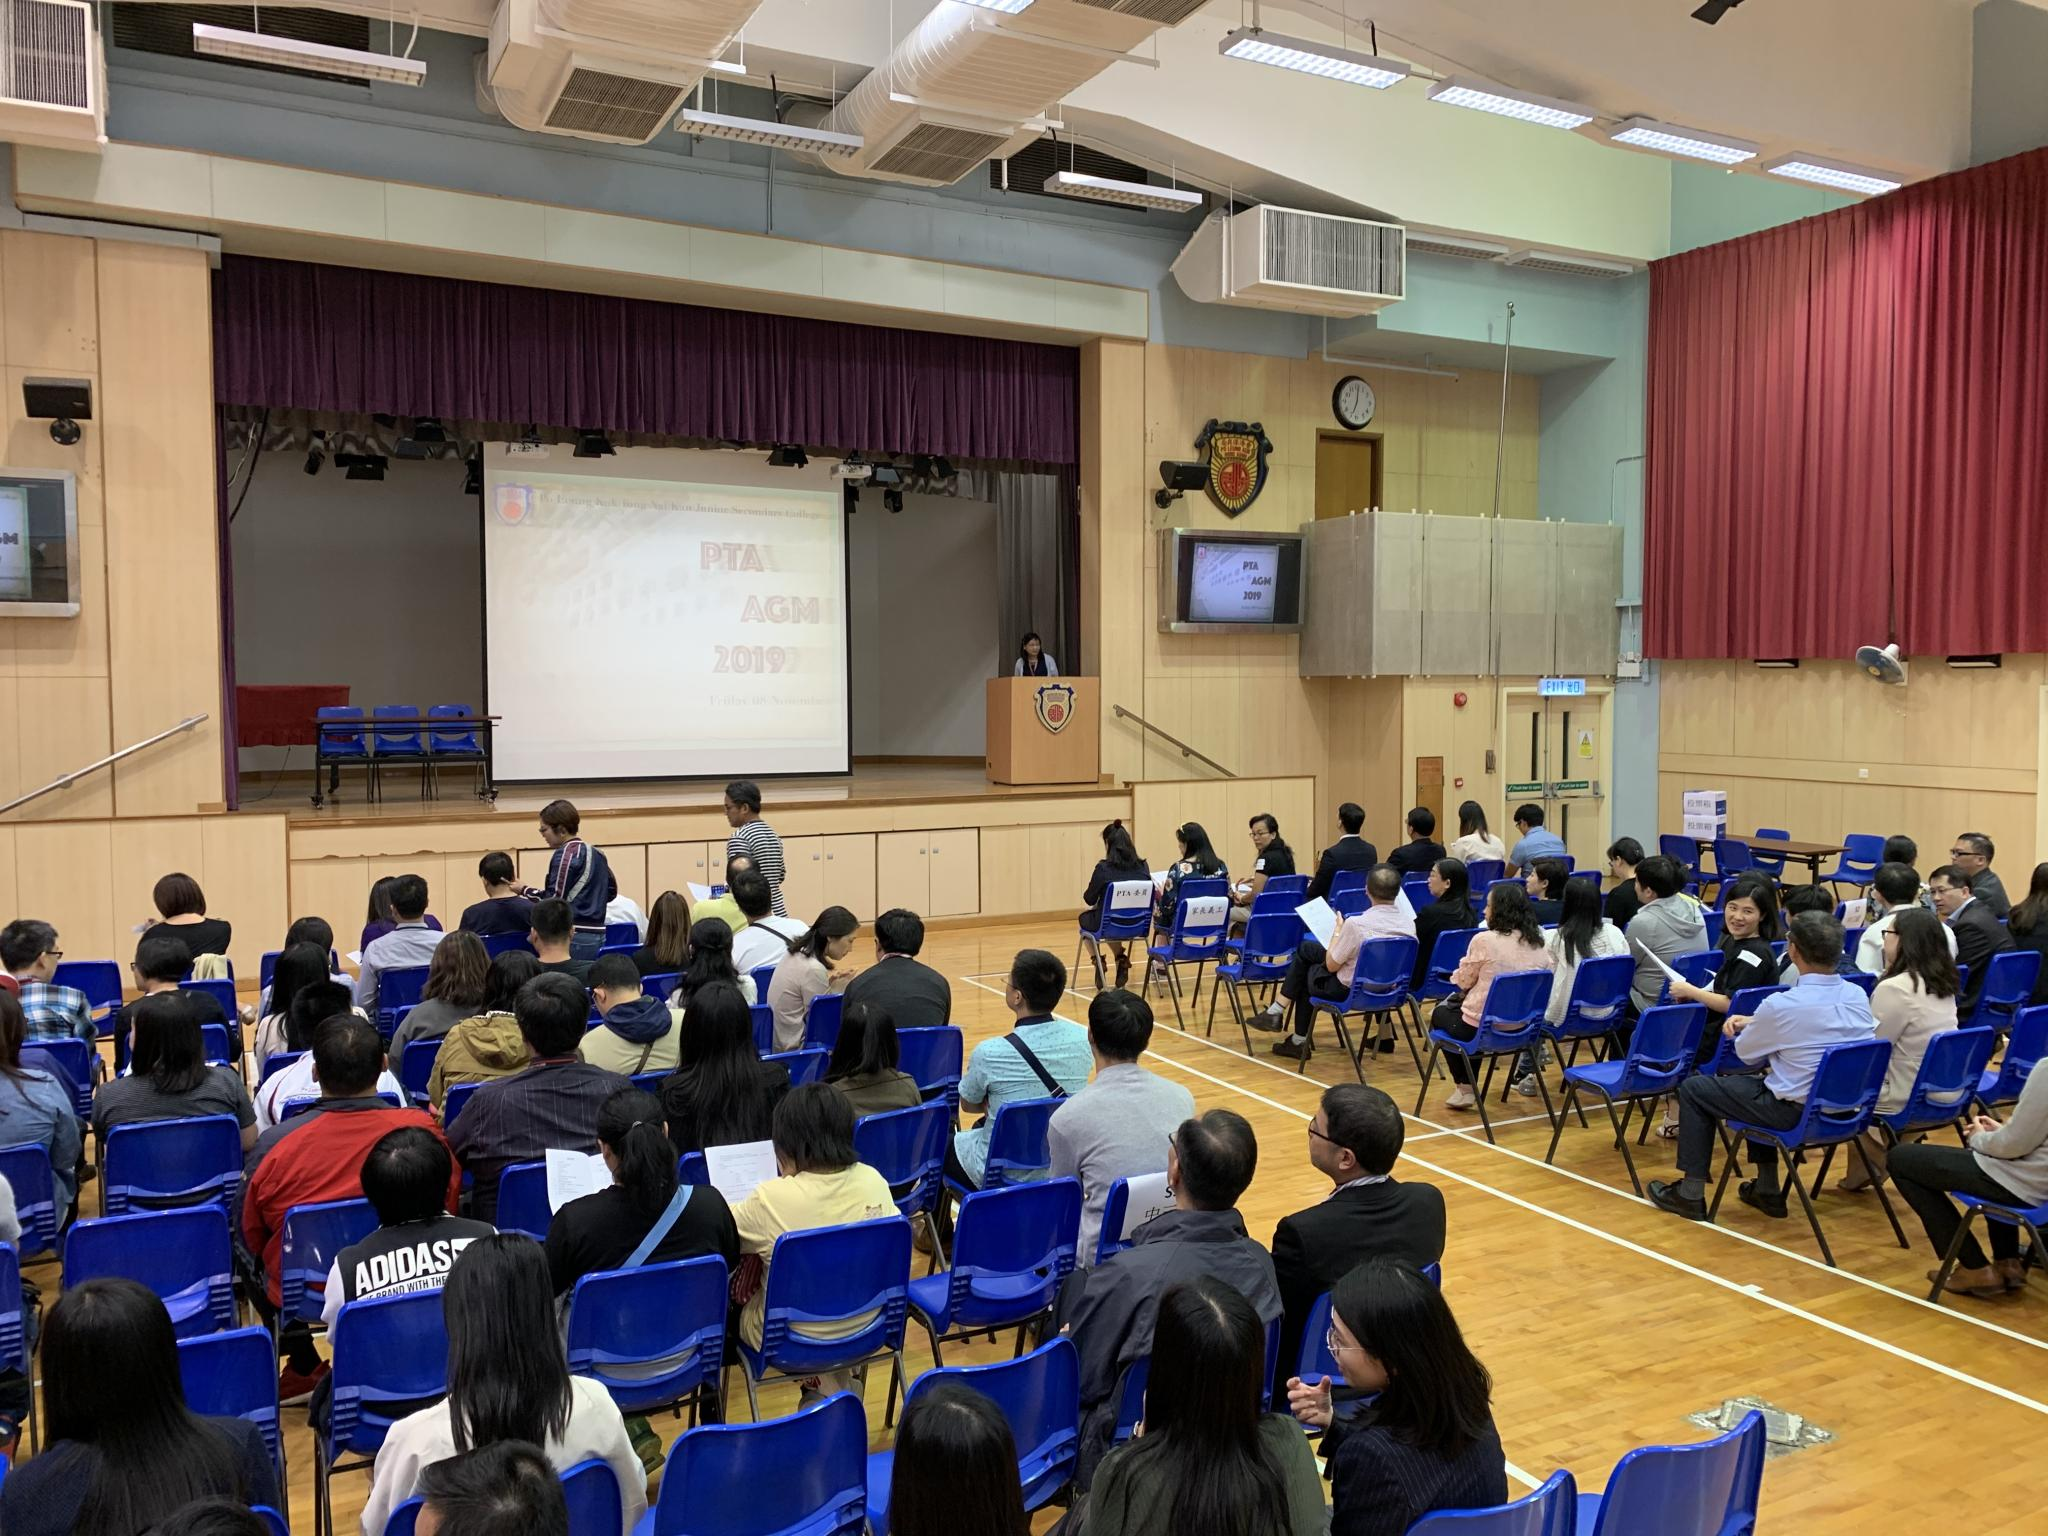 The PTA holds an Annual General Meeting each year which all parents and teachers are invited to attend.